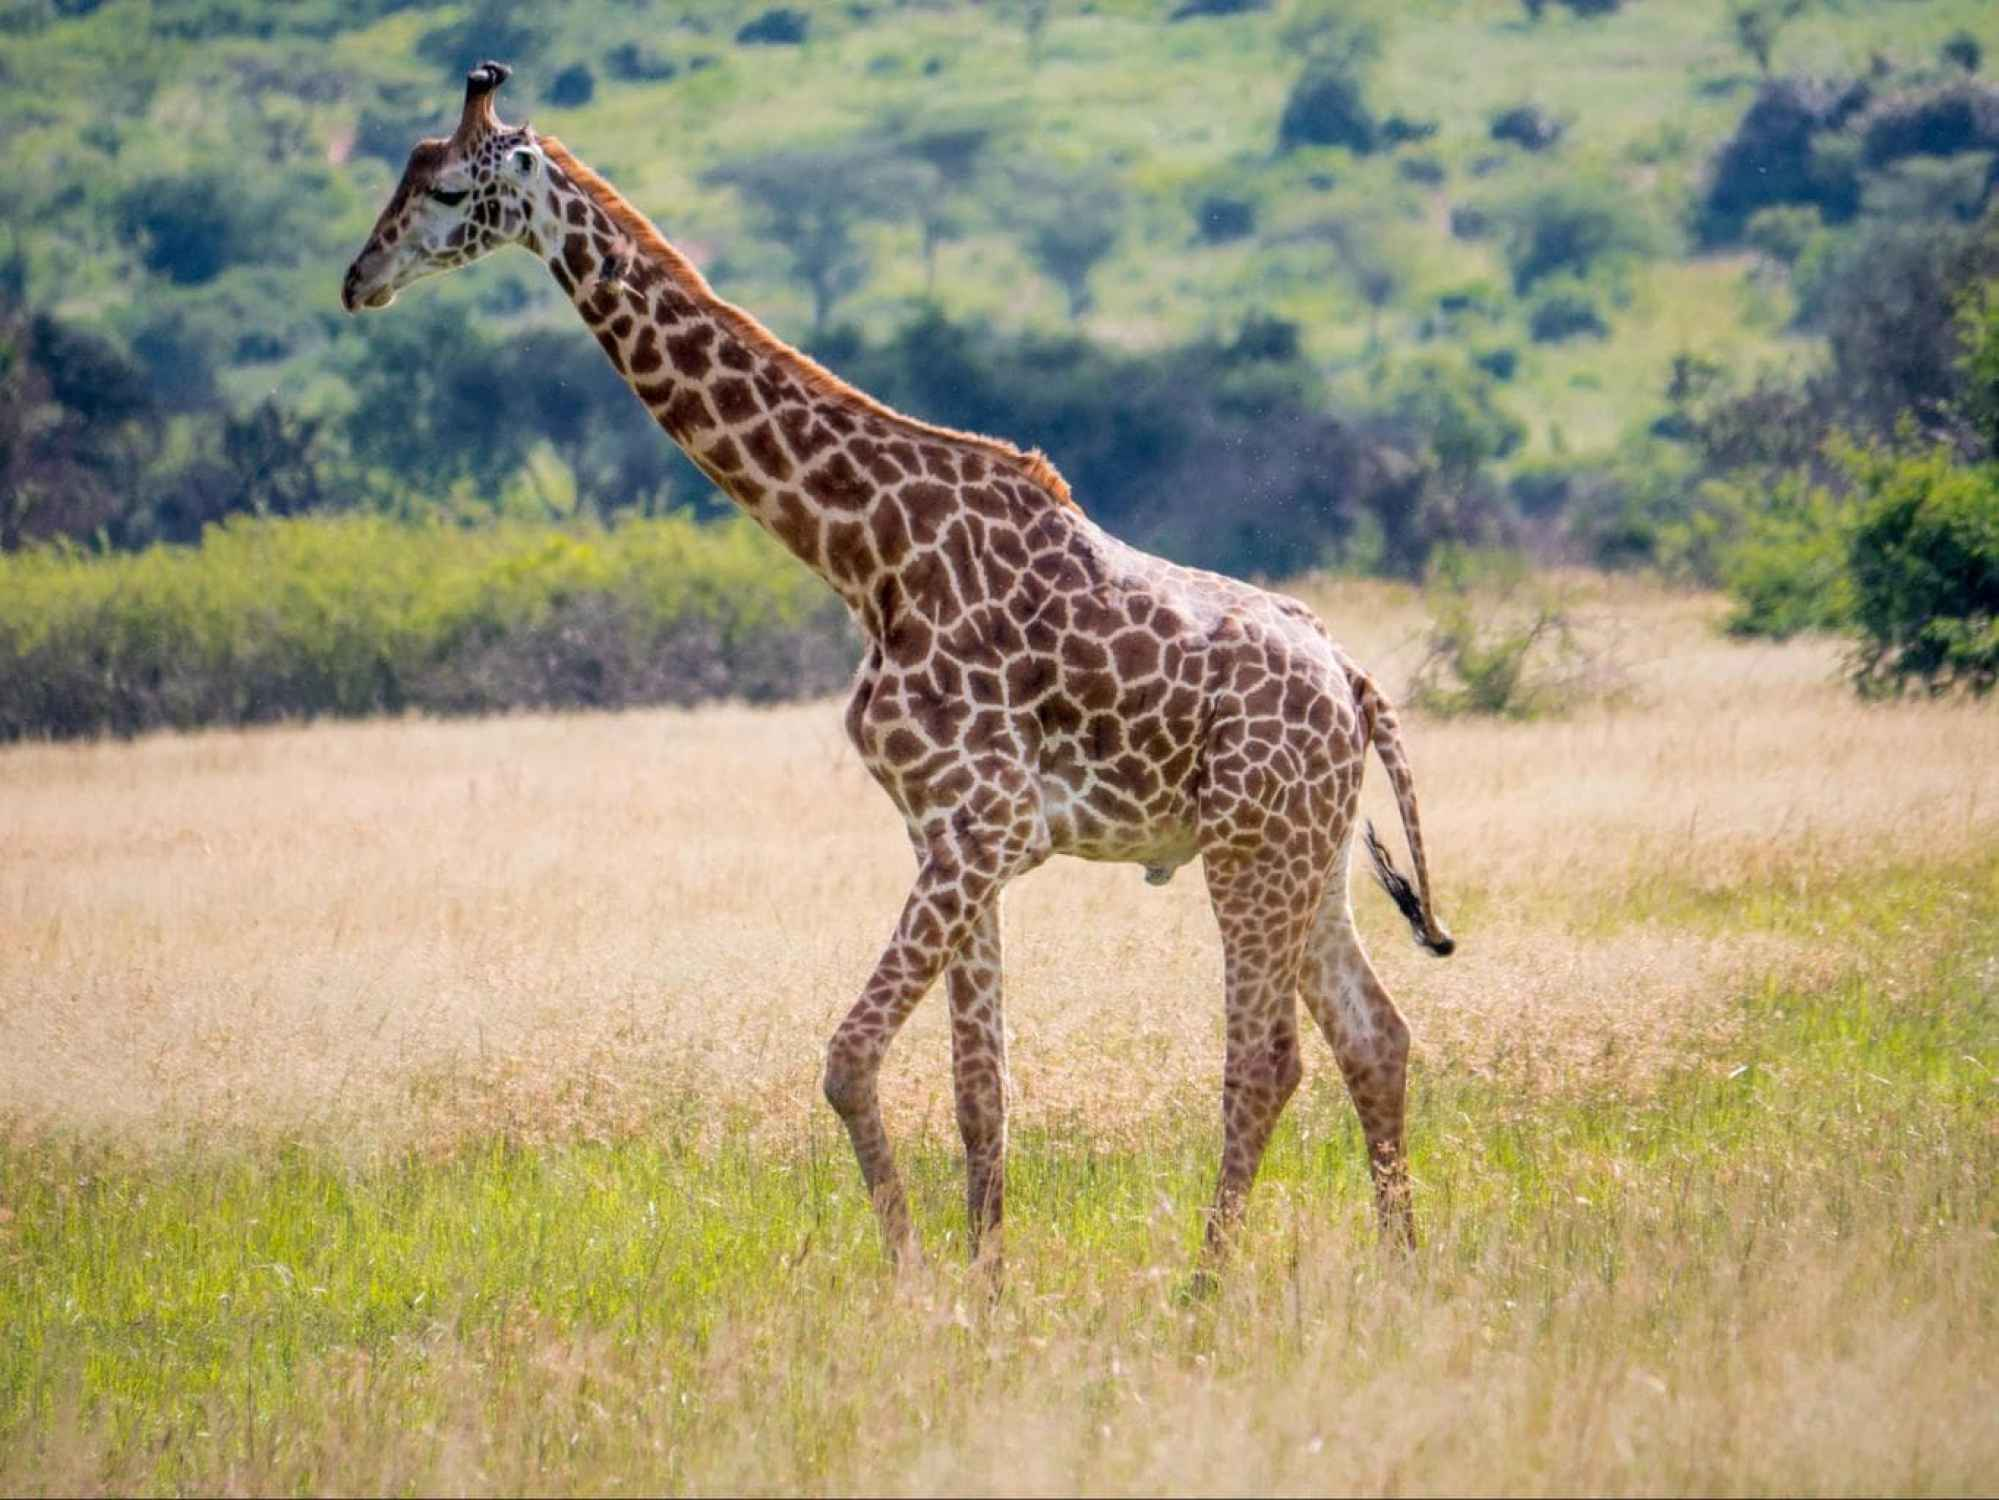 Giraffes at Akagera National Park